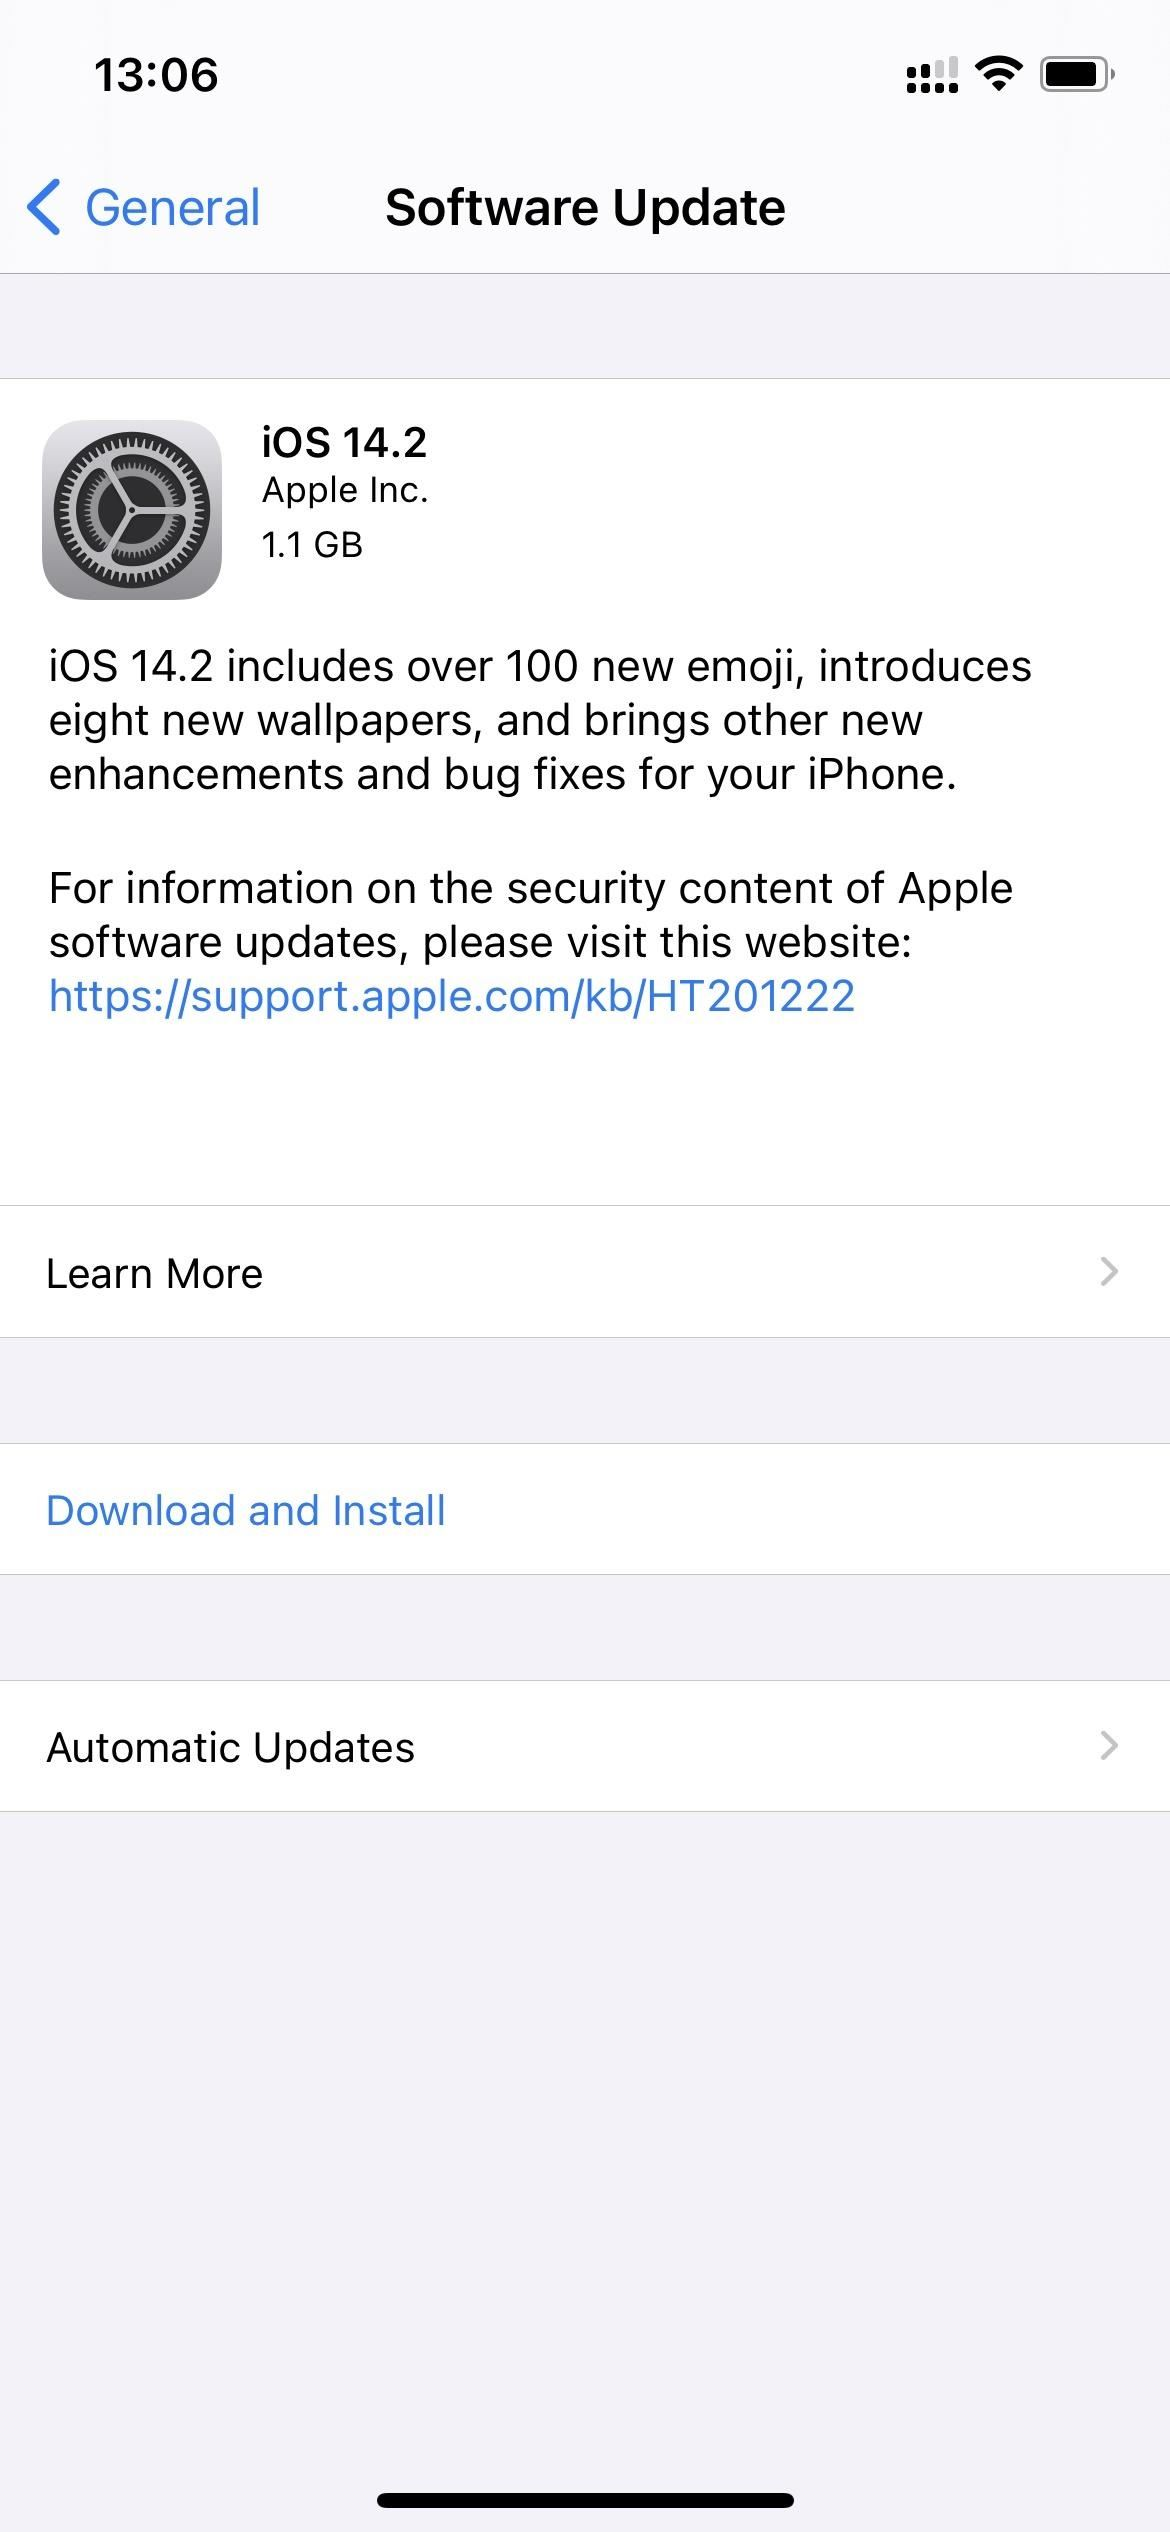 Apple Releases iOS 14.2 for iPhone, Introducing 100+ New Emoji, Eight New Wallpapers & More